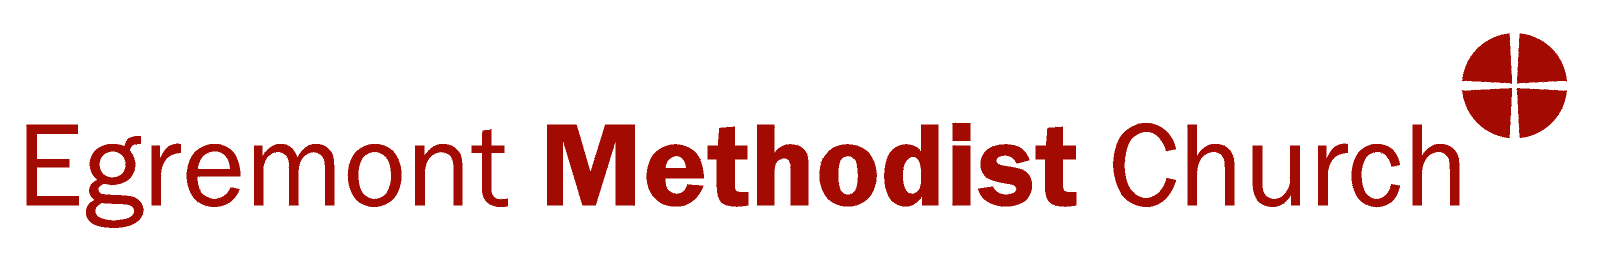 Egremont Methodist Church logo